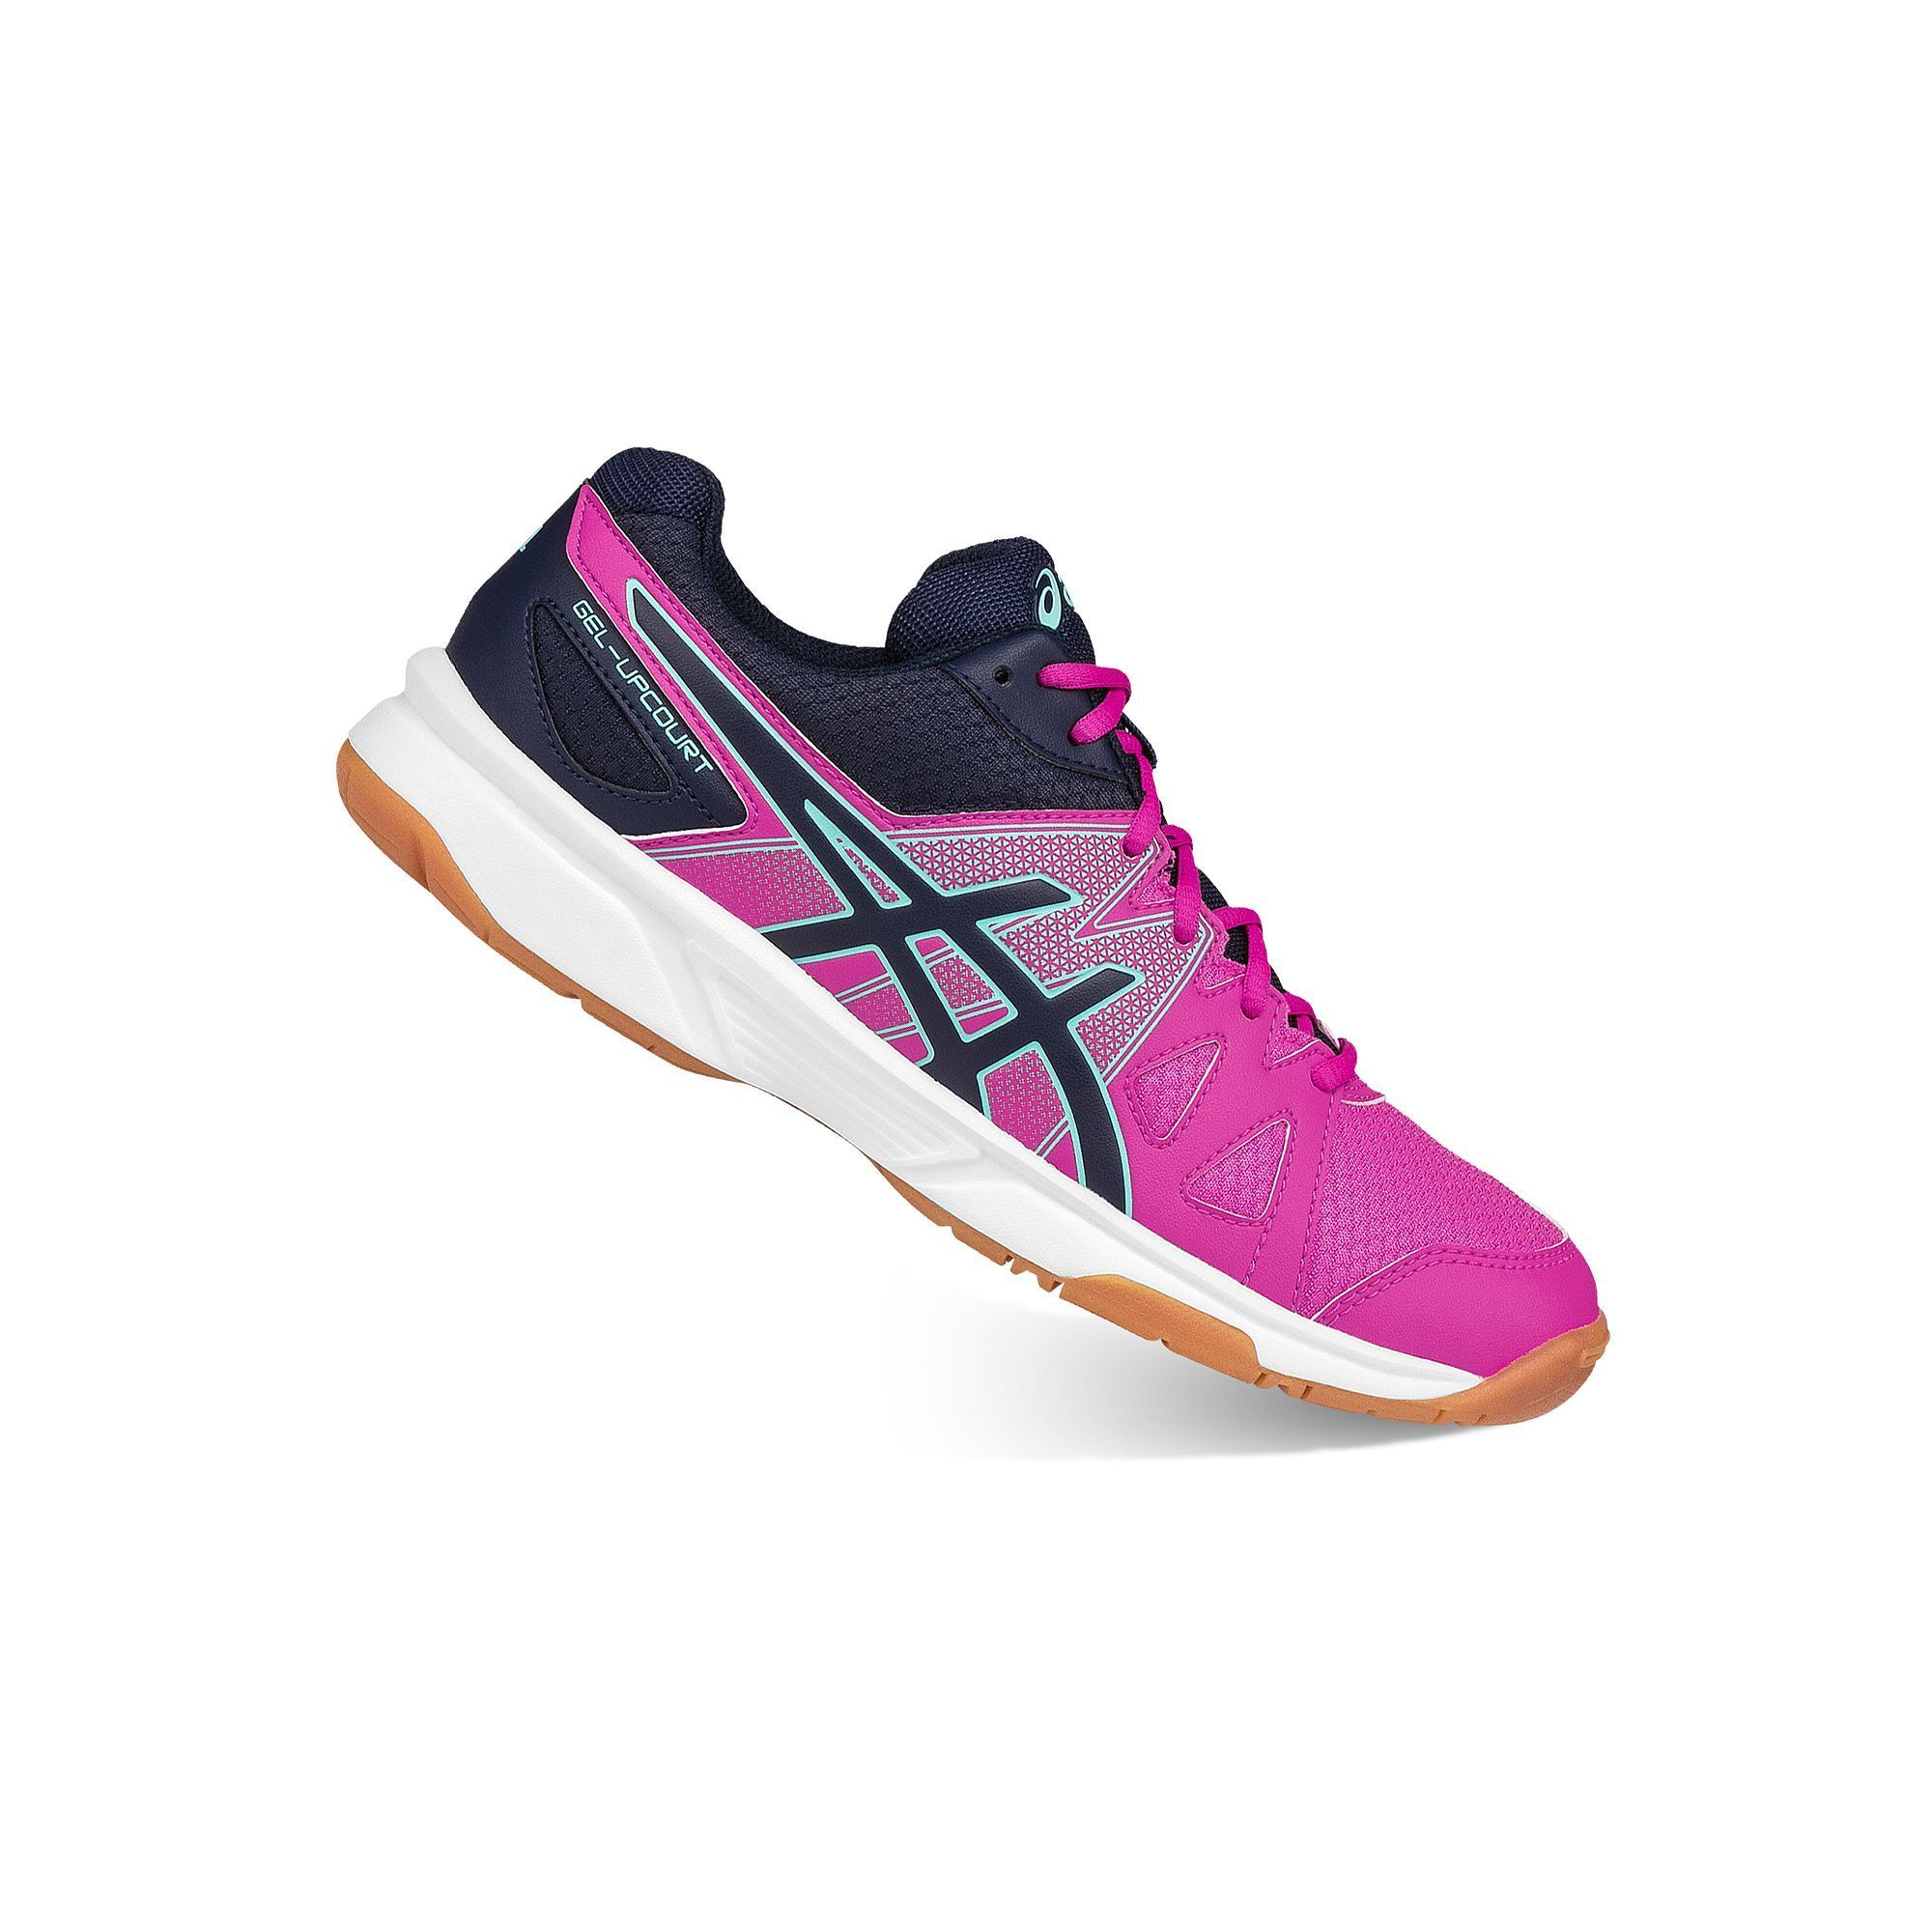 f77713e53b31 ASICS GEL-Upcourt Women s Volleyball Shoes in 2019